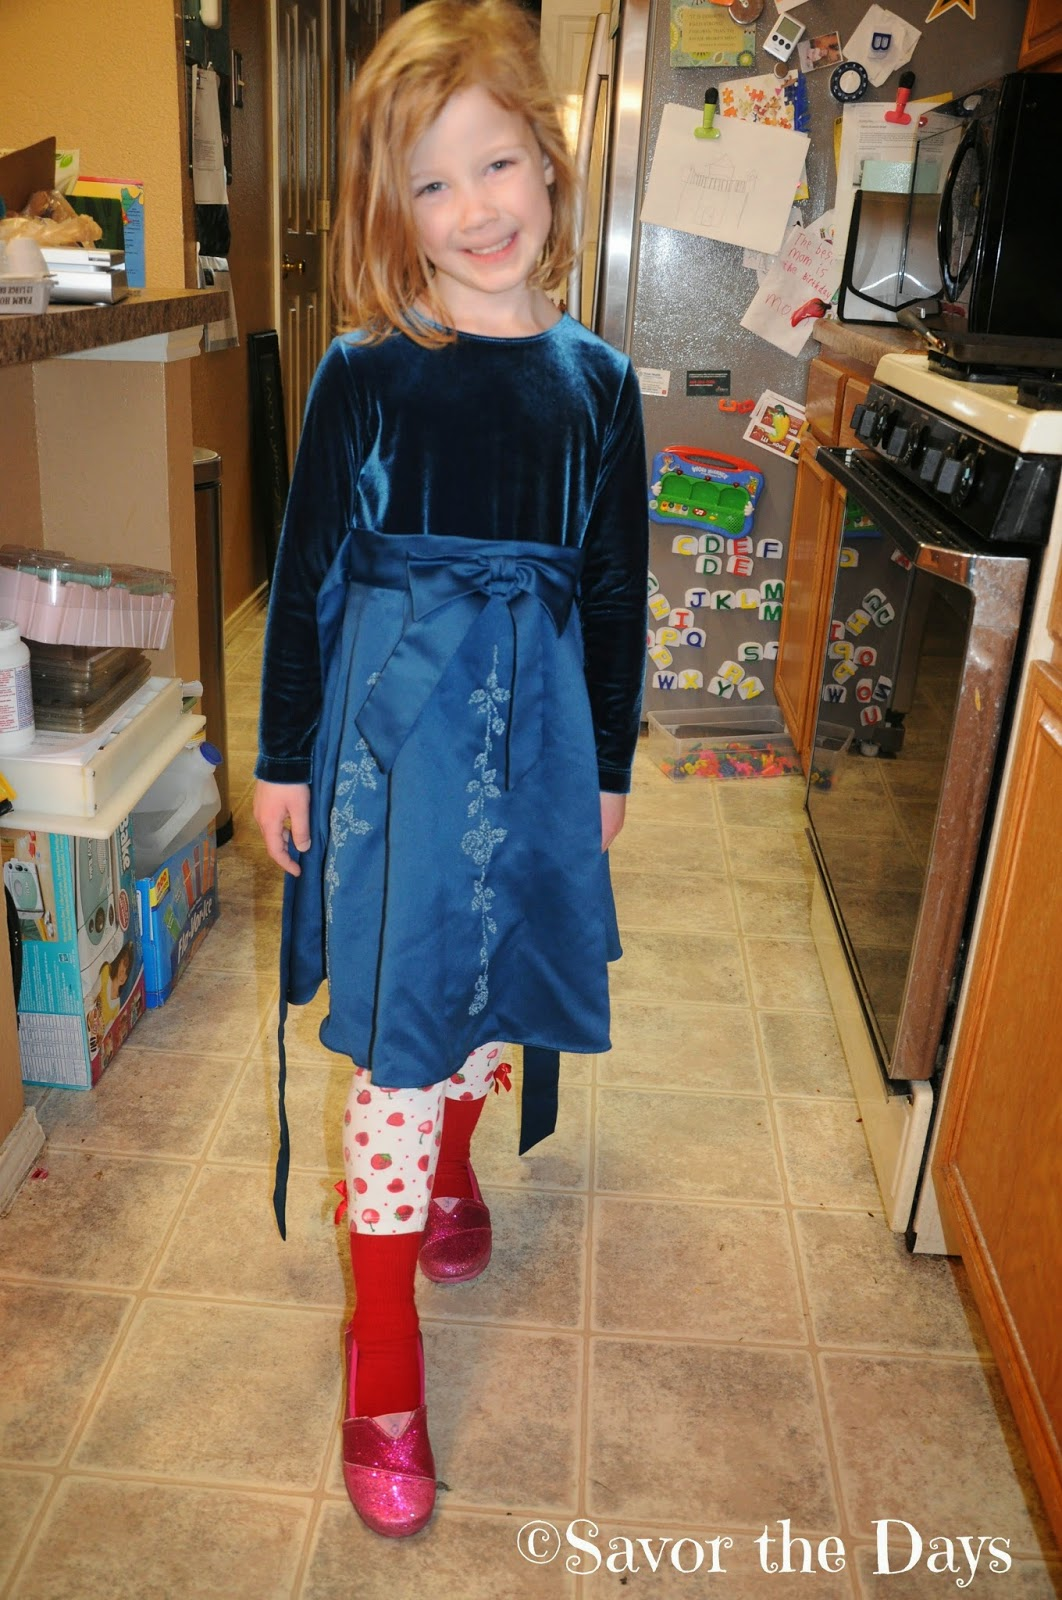 Preschooler in mismatched outfit